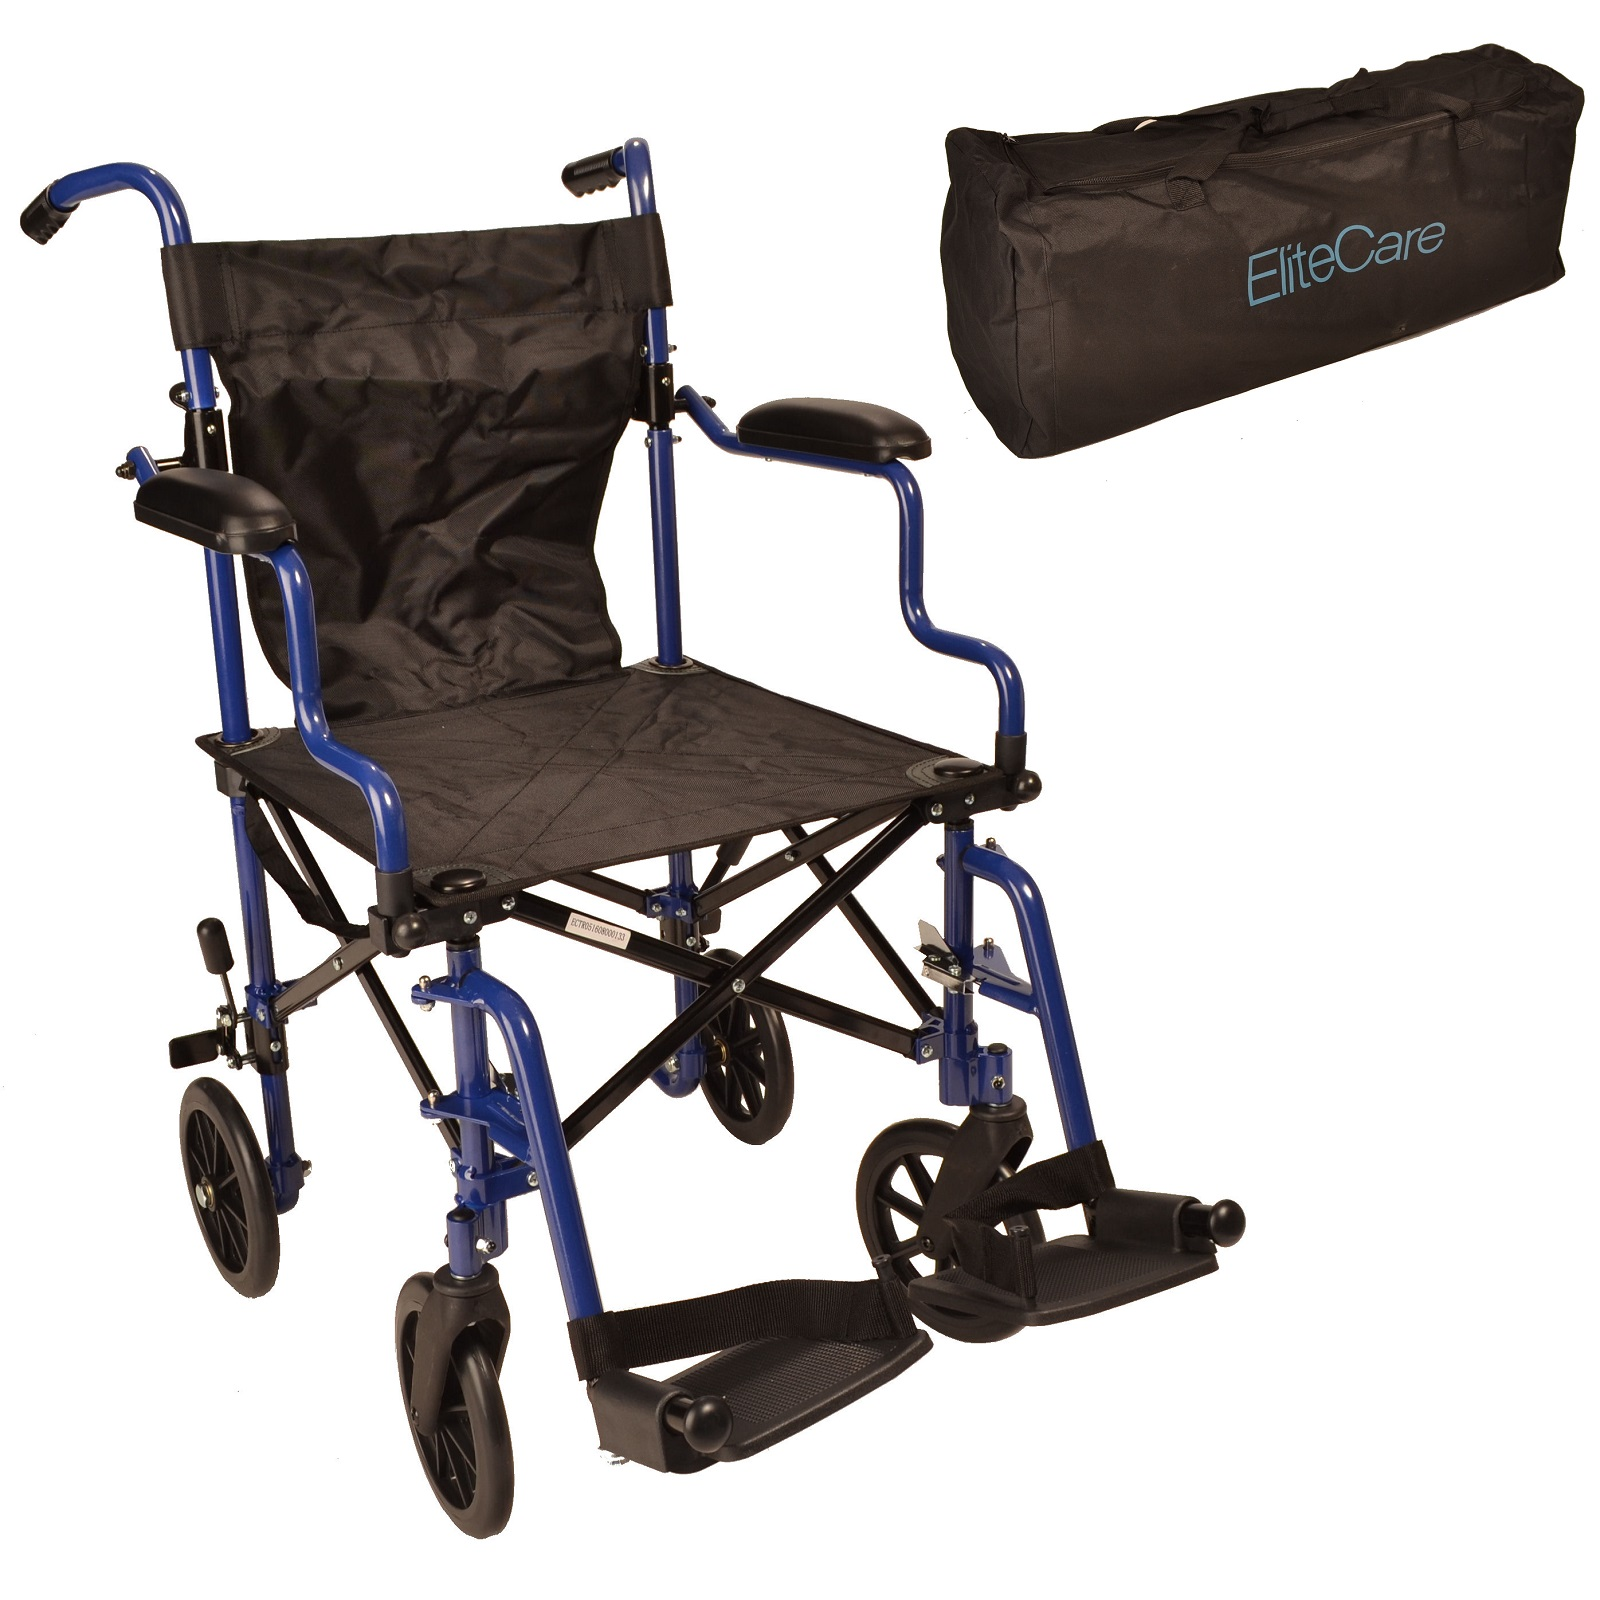 Wheelchair In A Bag Lightweight And Folding Ectr05 Elite